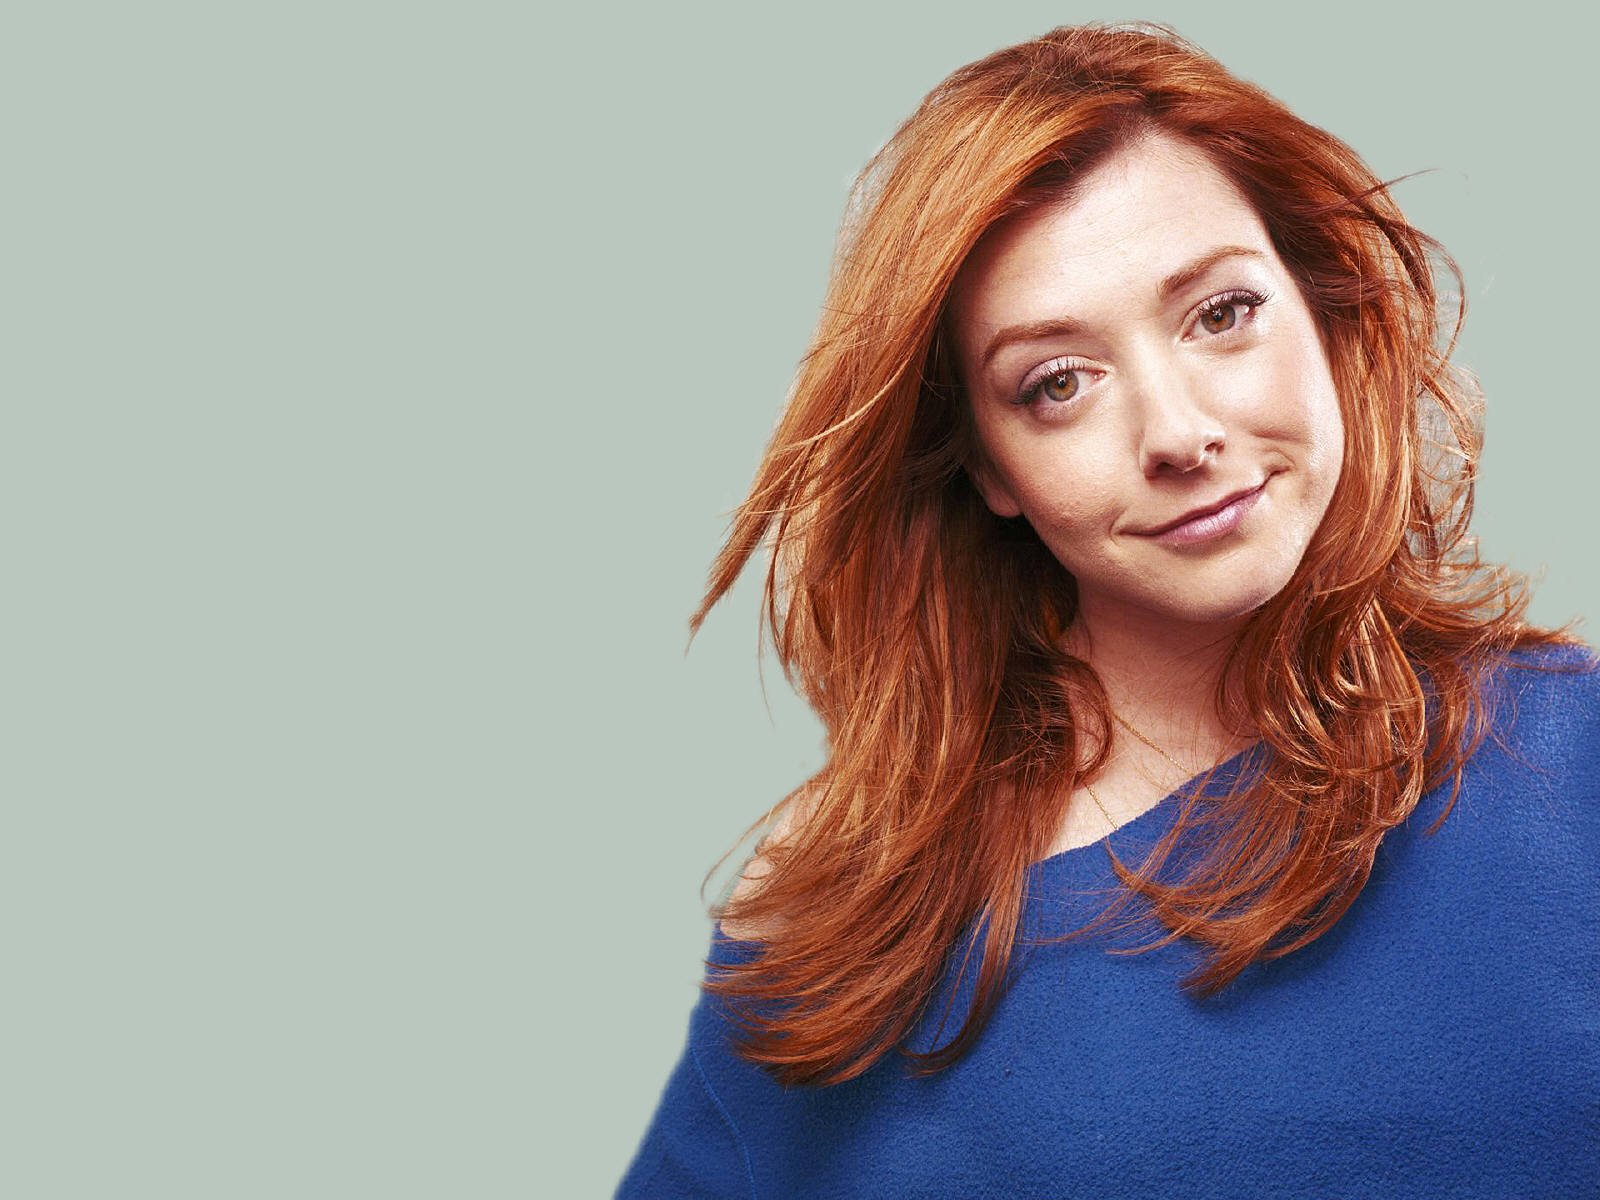 Alyson Hannigan Pokies alyson hannigan wallpaper | 1600x1200 | #61494